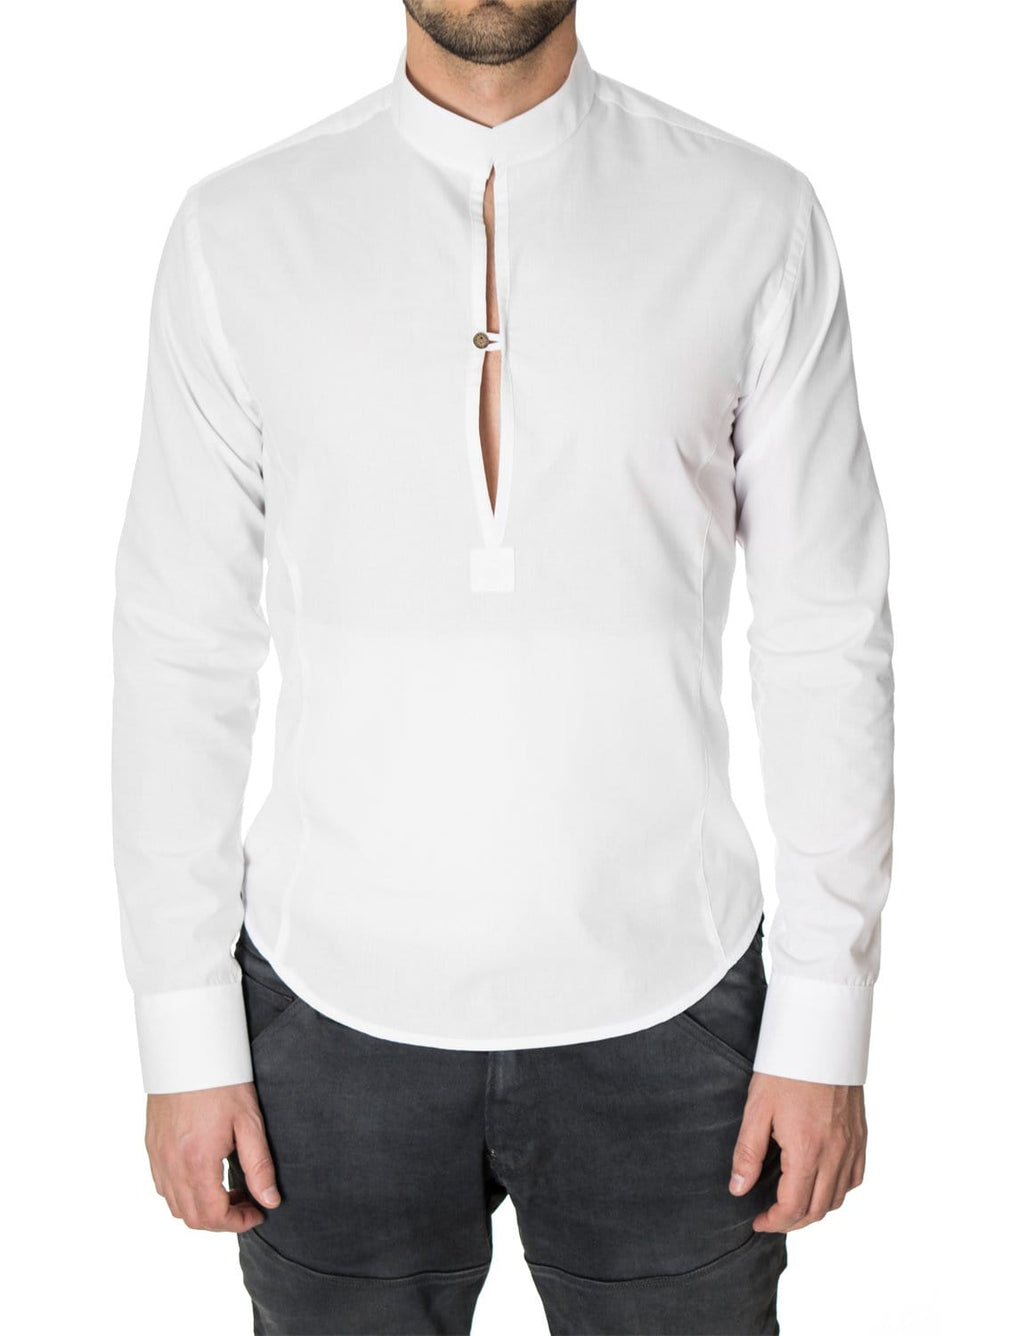 Mens long sleeve mao collar henley shirt white (MOD1800LS)